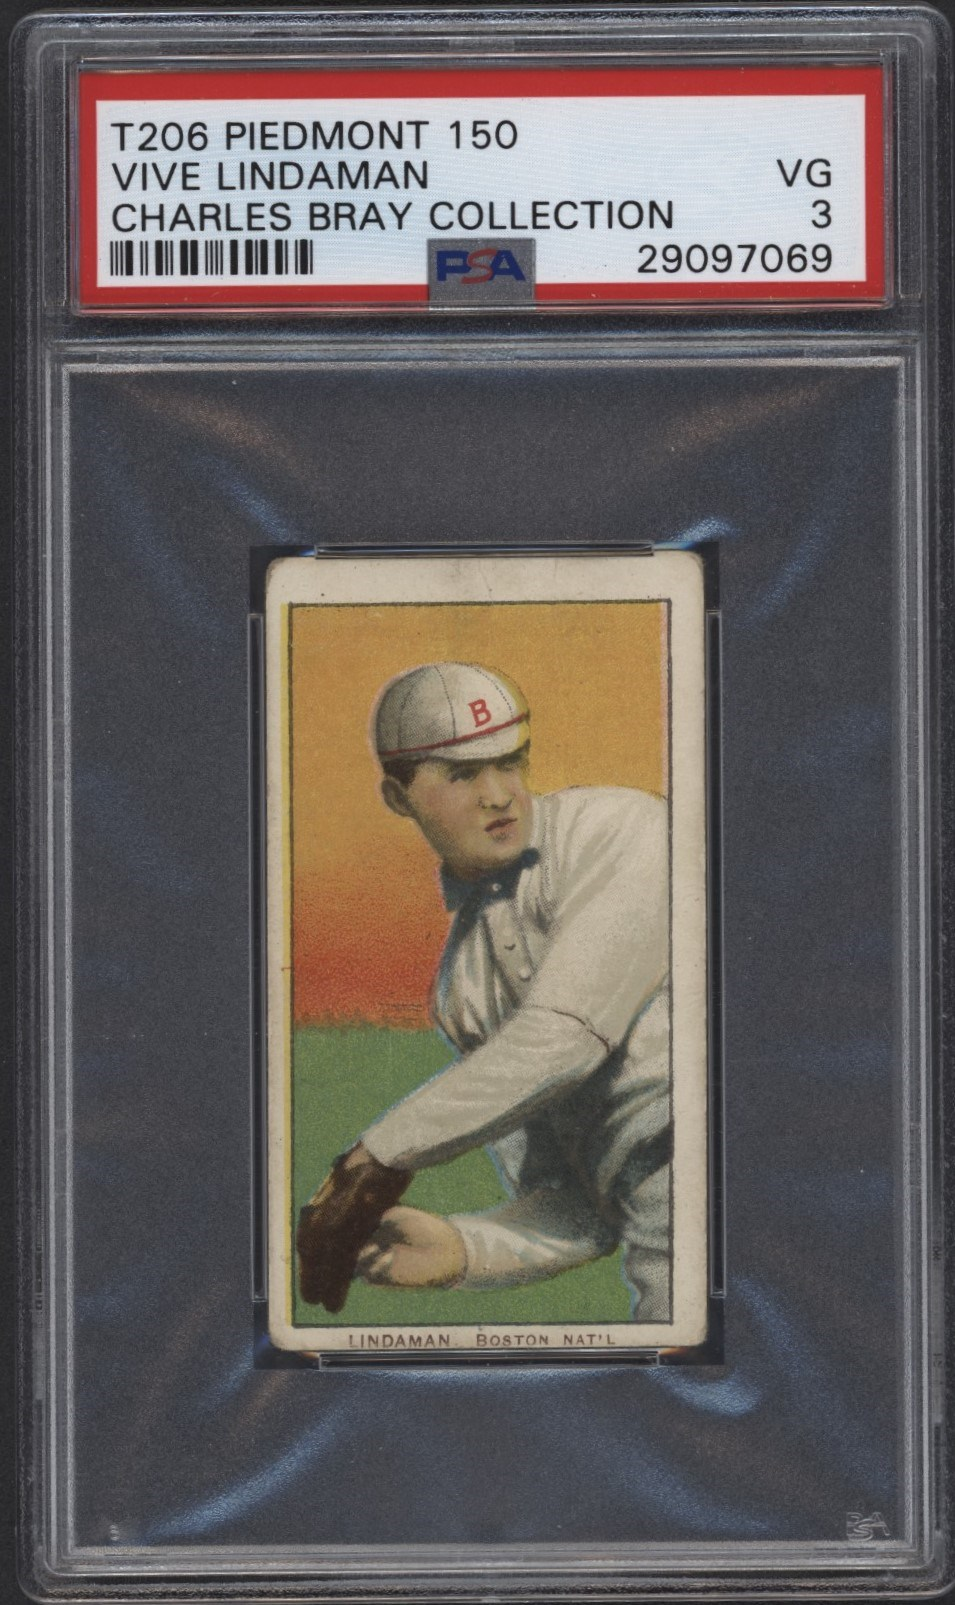 T206 Piedmont 150 Vive Lindaman PSA 3 From the Charles Bray Collection